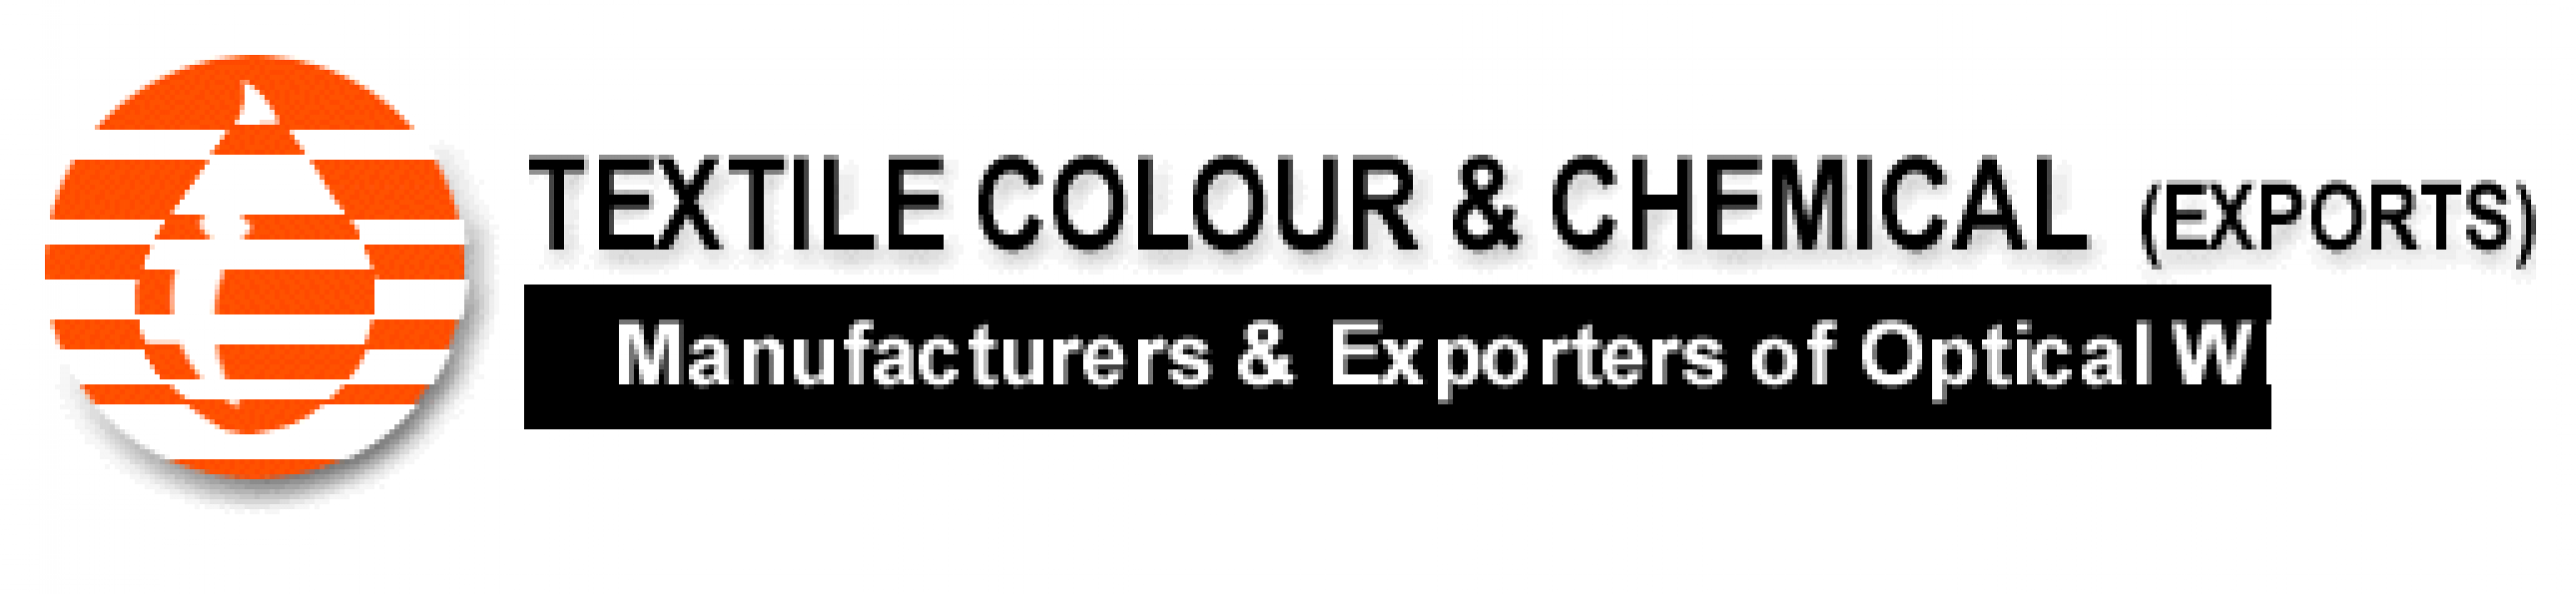 TEXTILE COLOUR & CHEMICAL (EXPORTS)